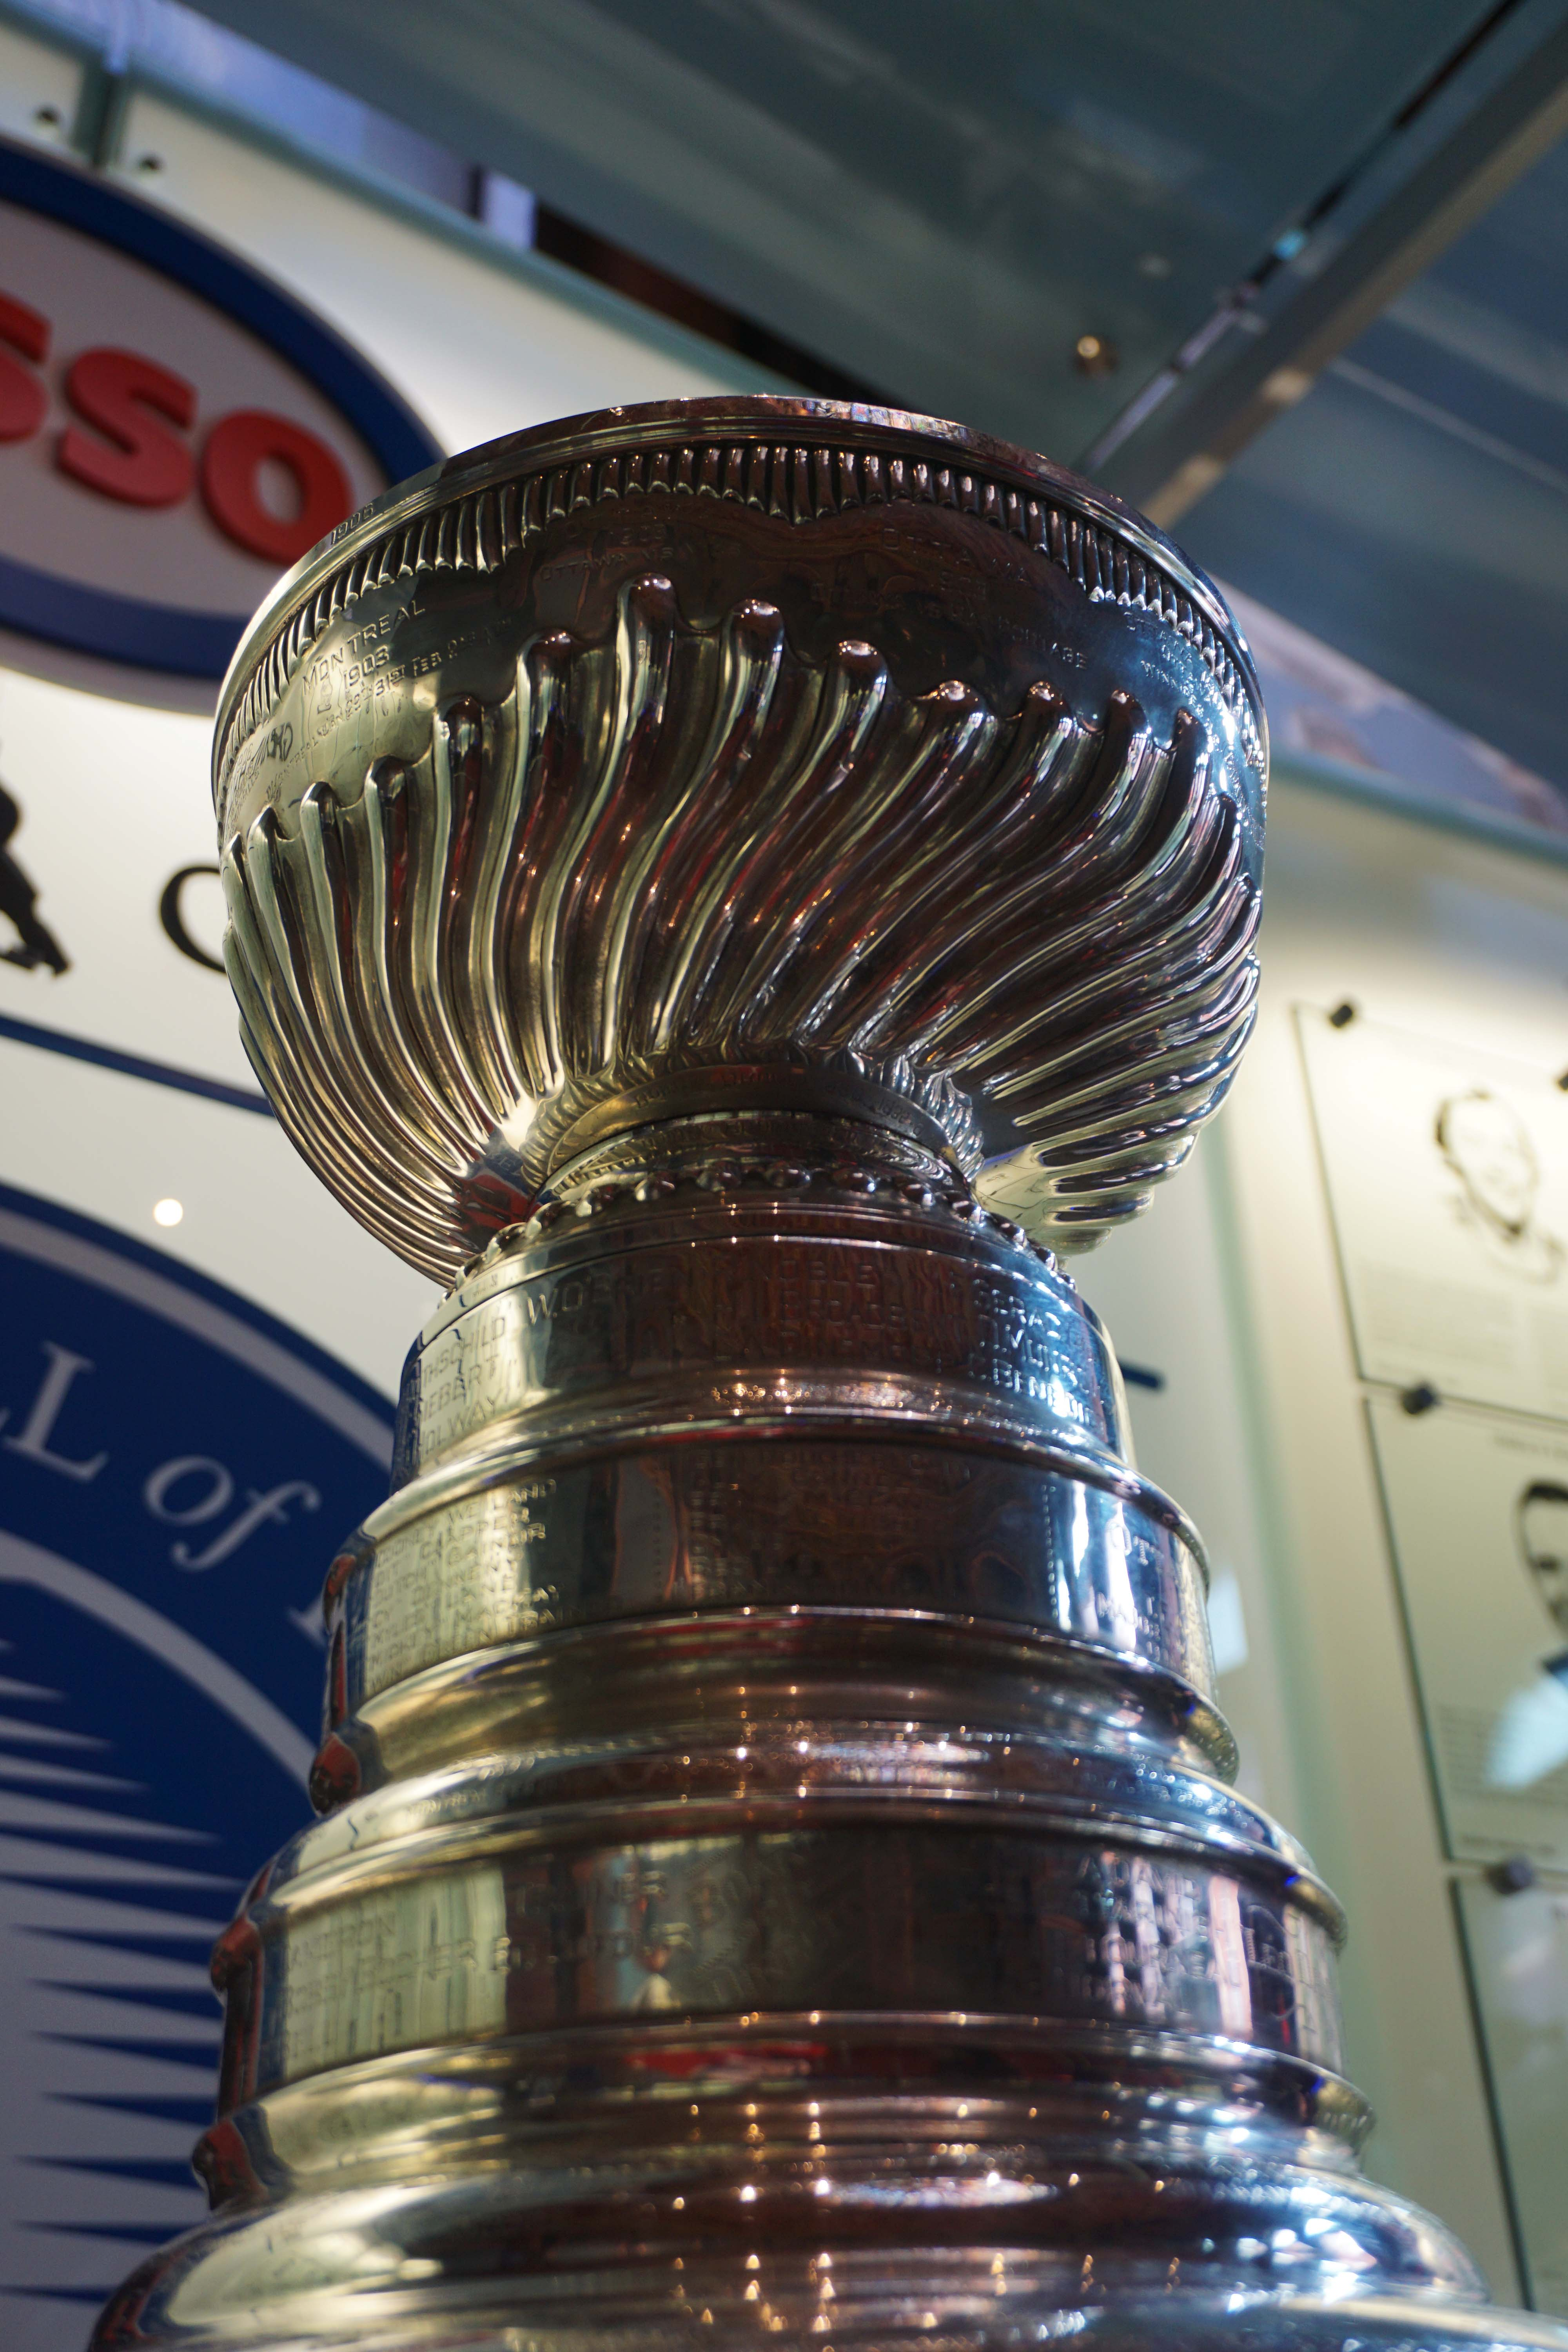 Stanley Cup displayed at the Hockey Hall of Fame in Toronto, Canada